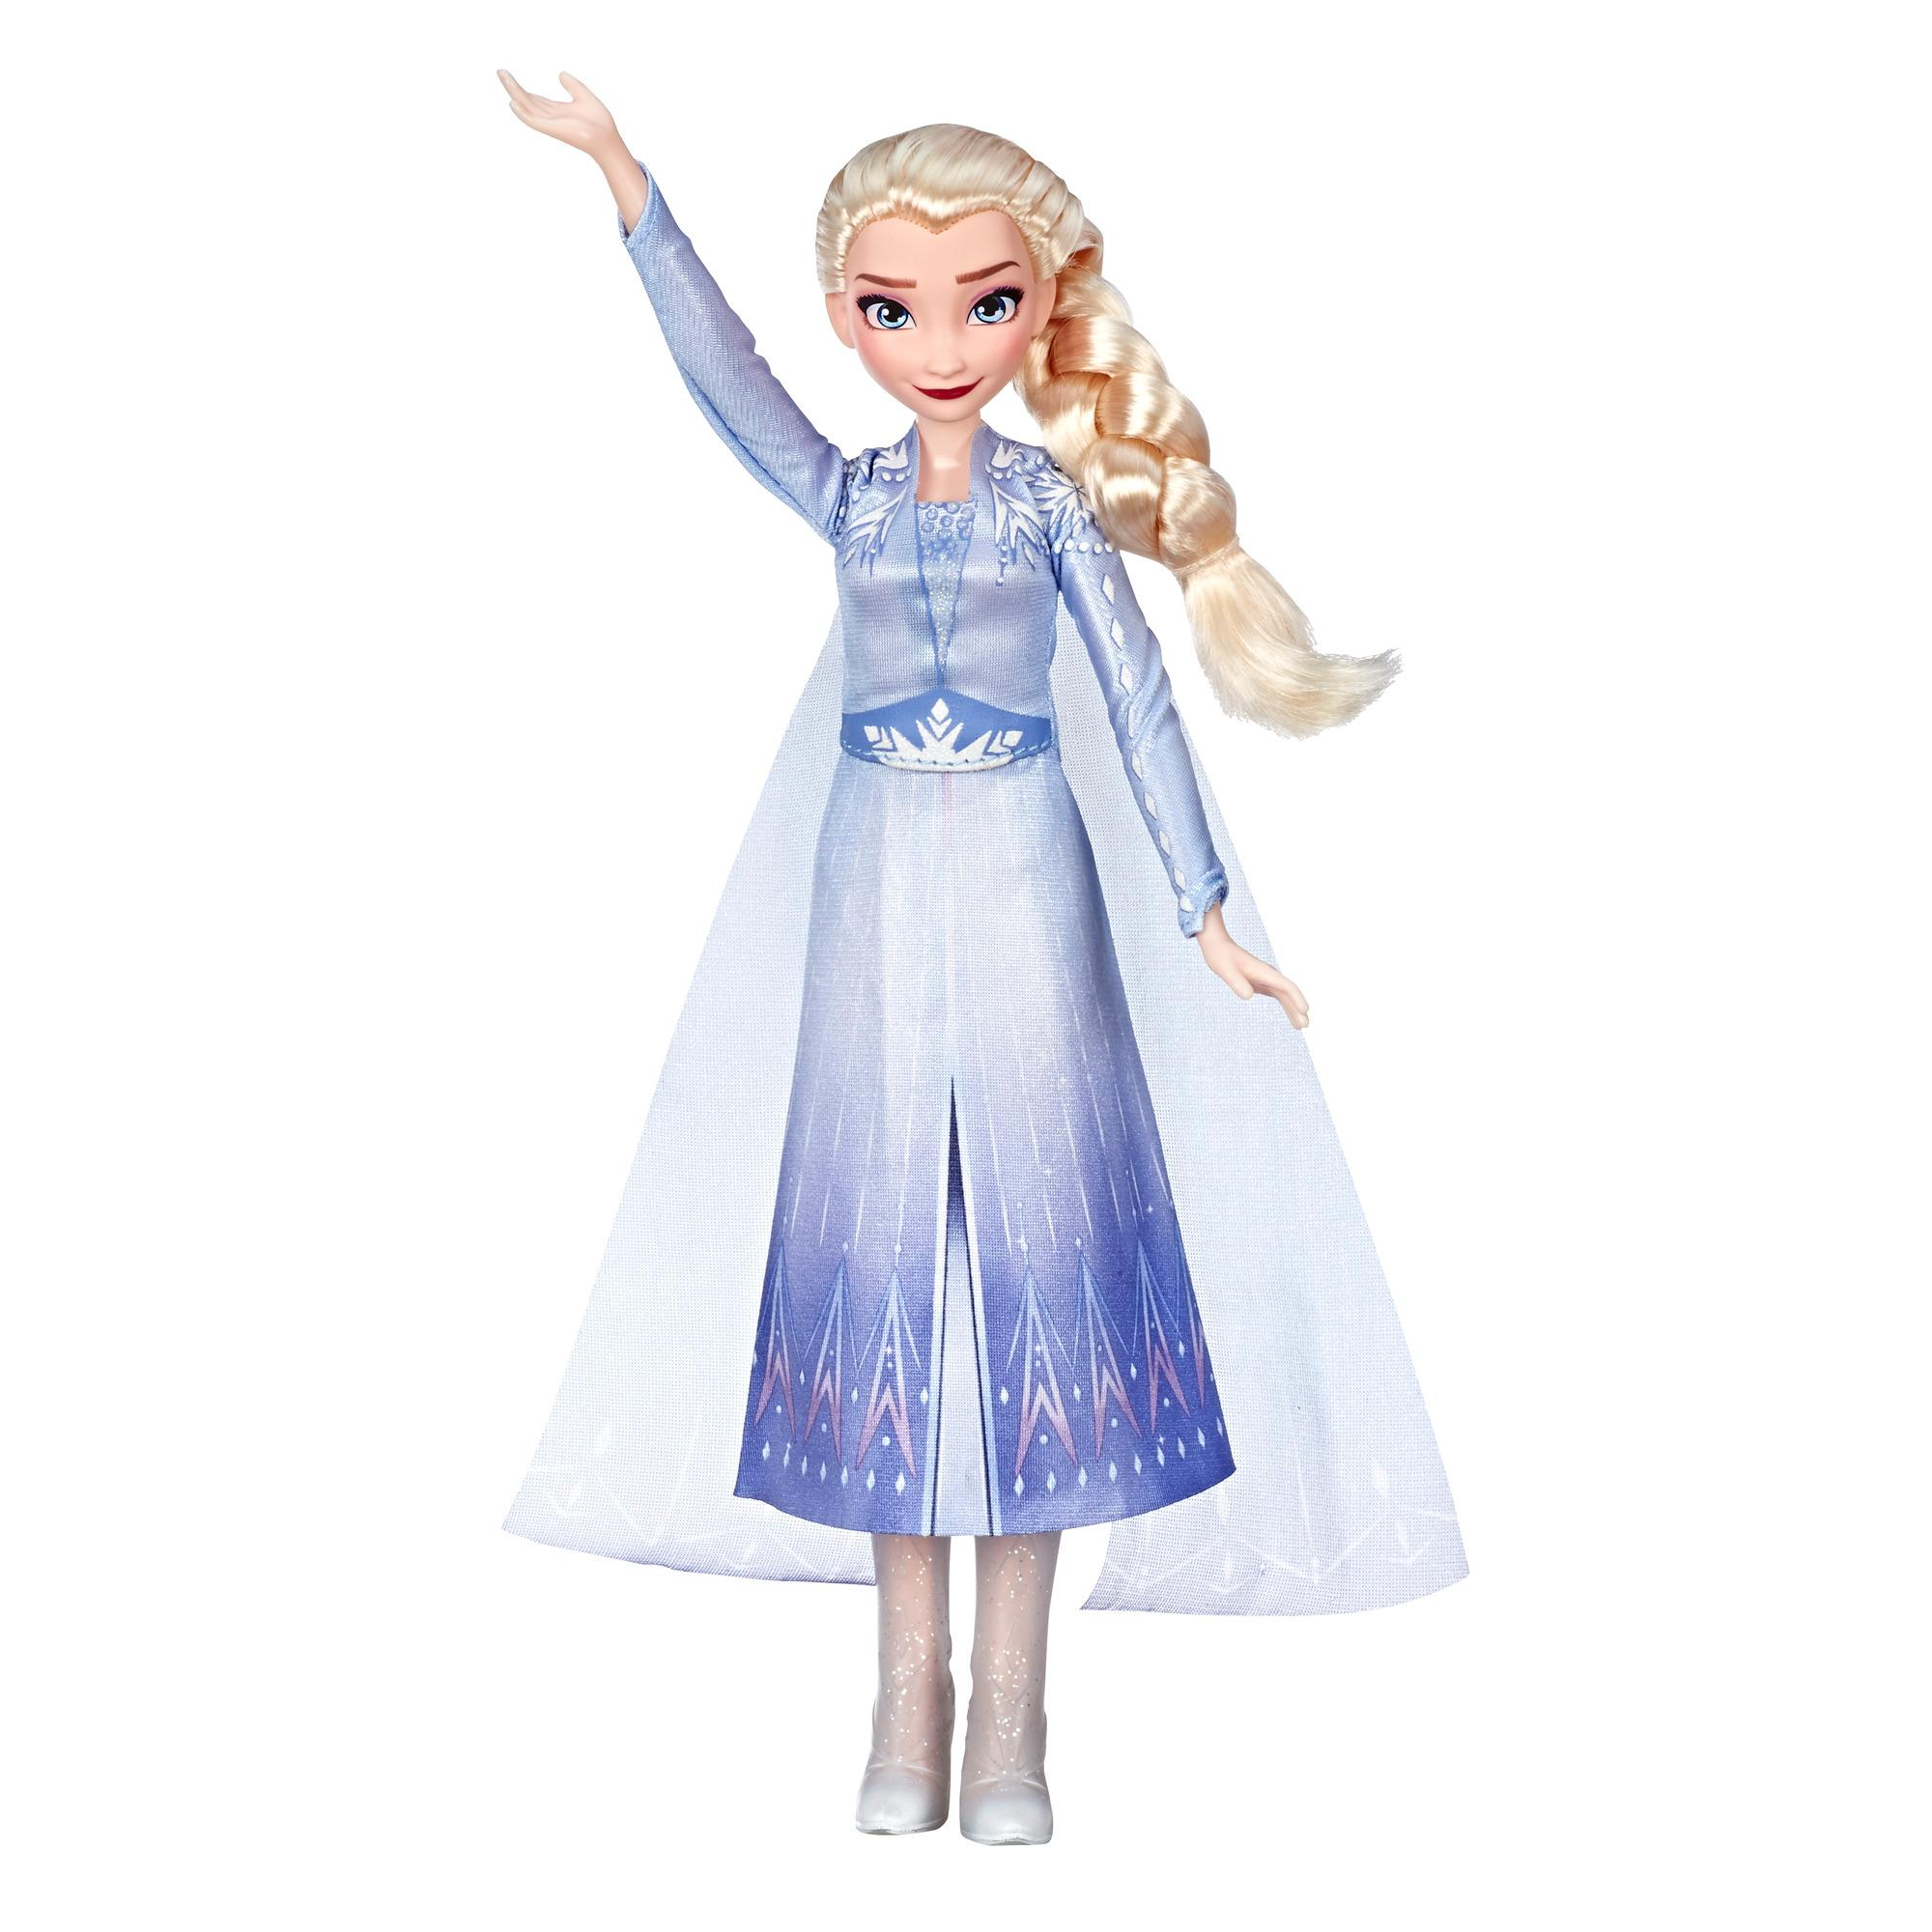 Disney Frozen Singing Elsa Fashion Doll with Music Wearing Blue Dress Inspired by Disney Frozen 2